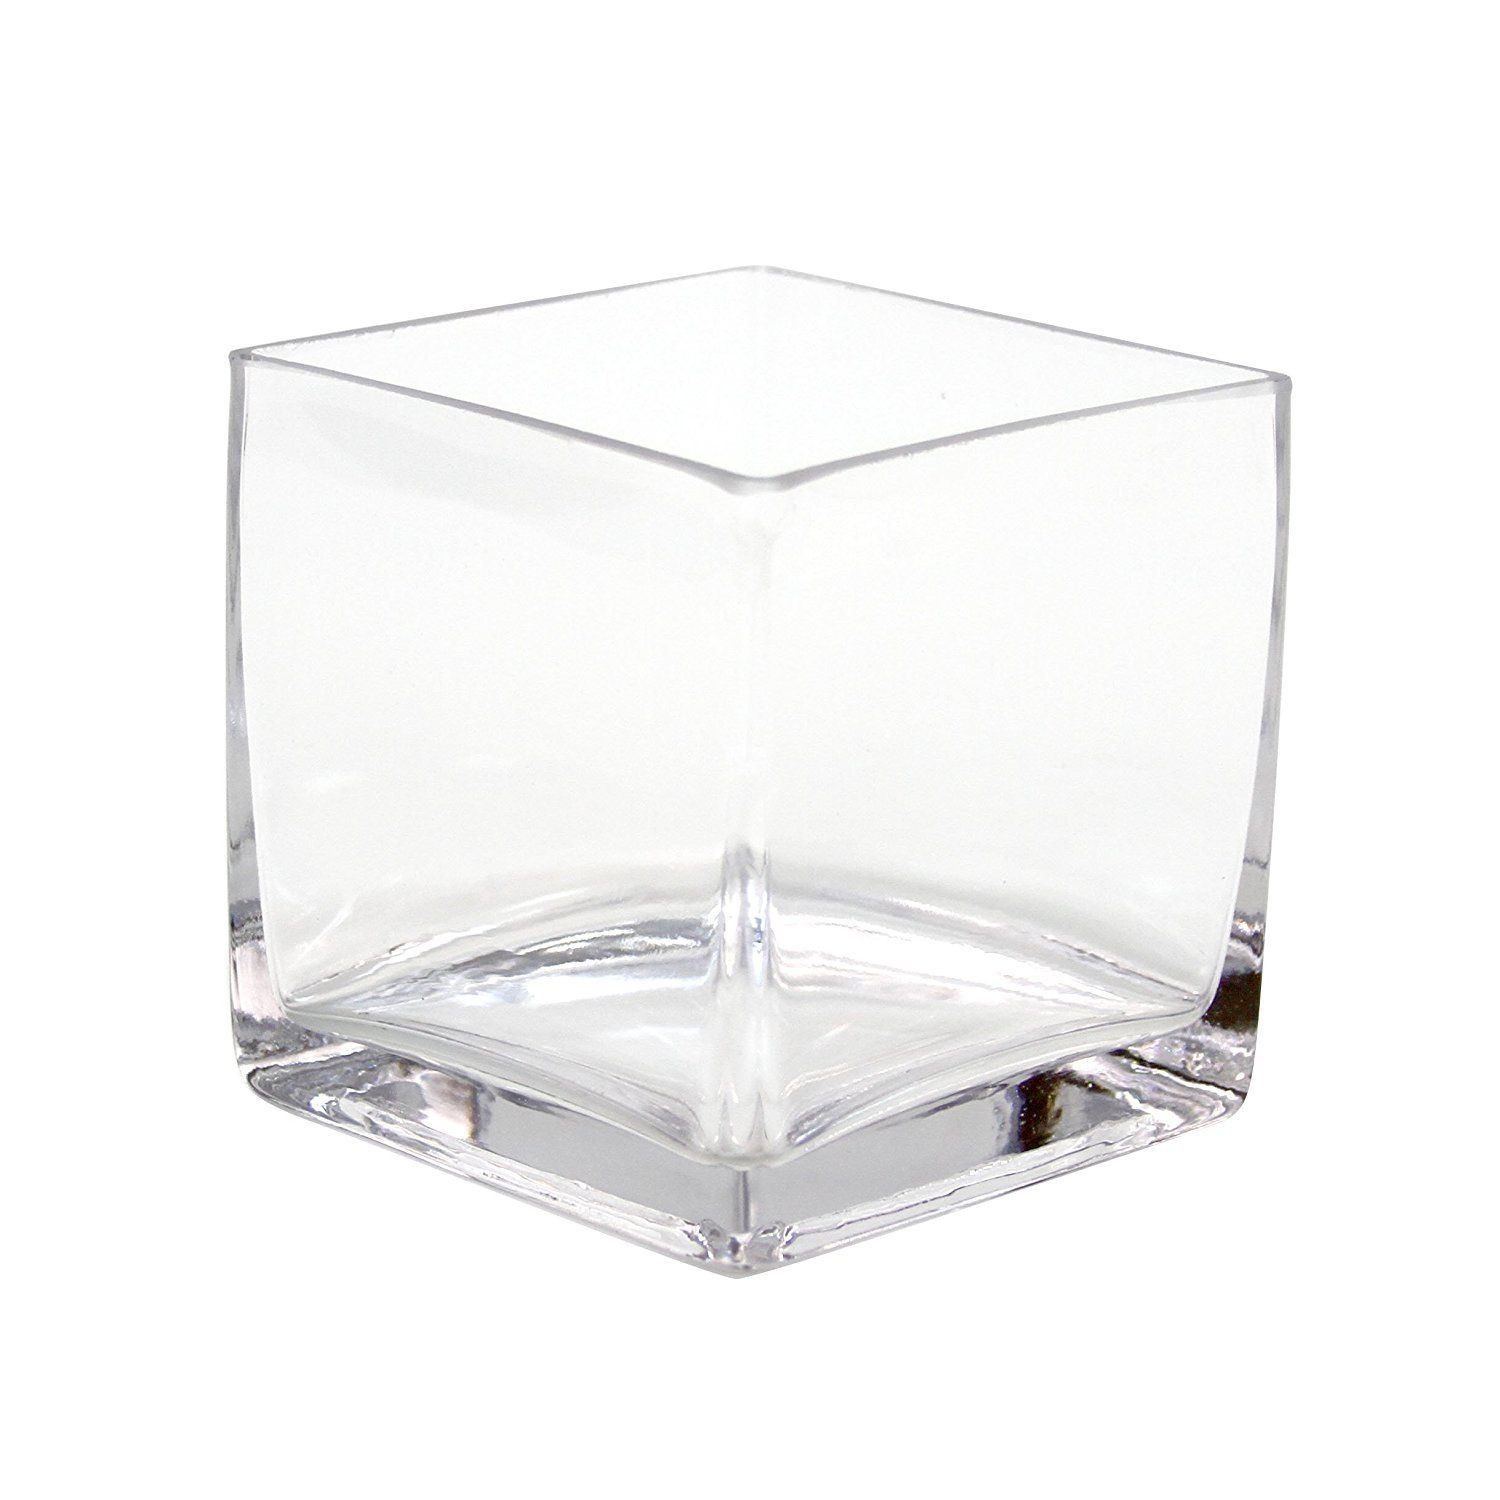 modern vases wholesale of koyal wholesale 404343 12 pack cube square glass vases 4 by 4 by 4 in glass